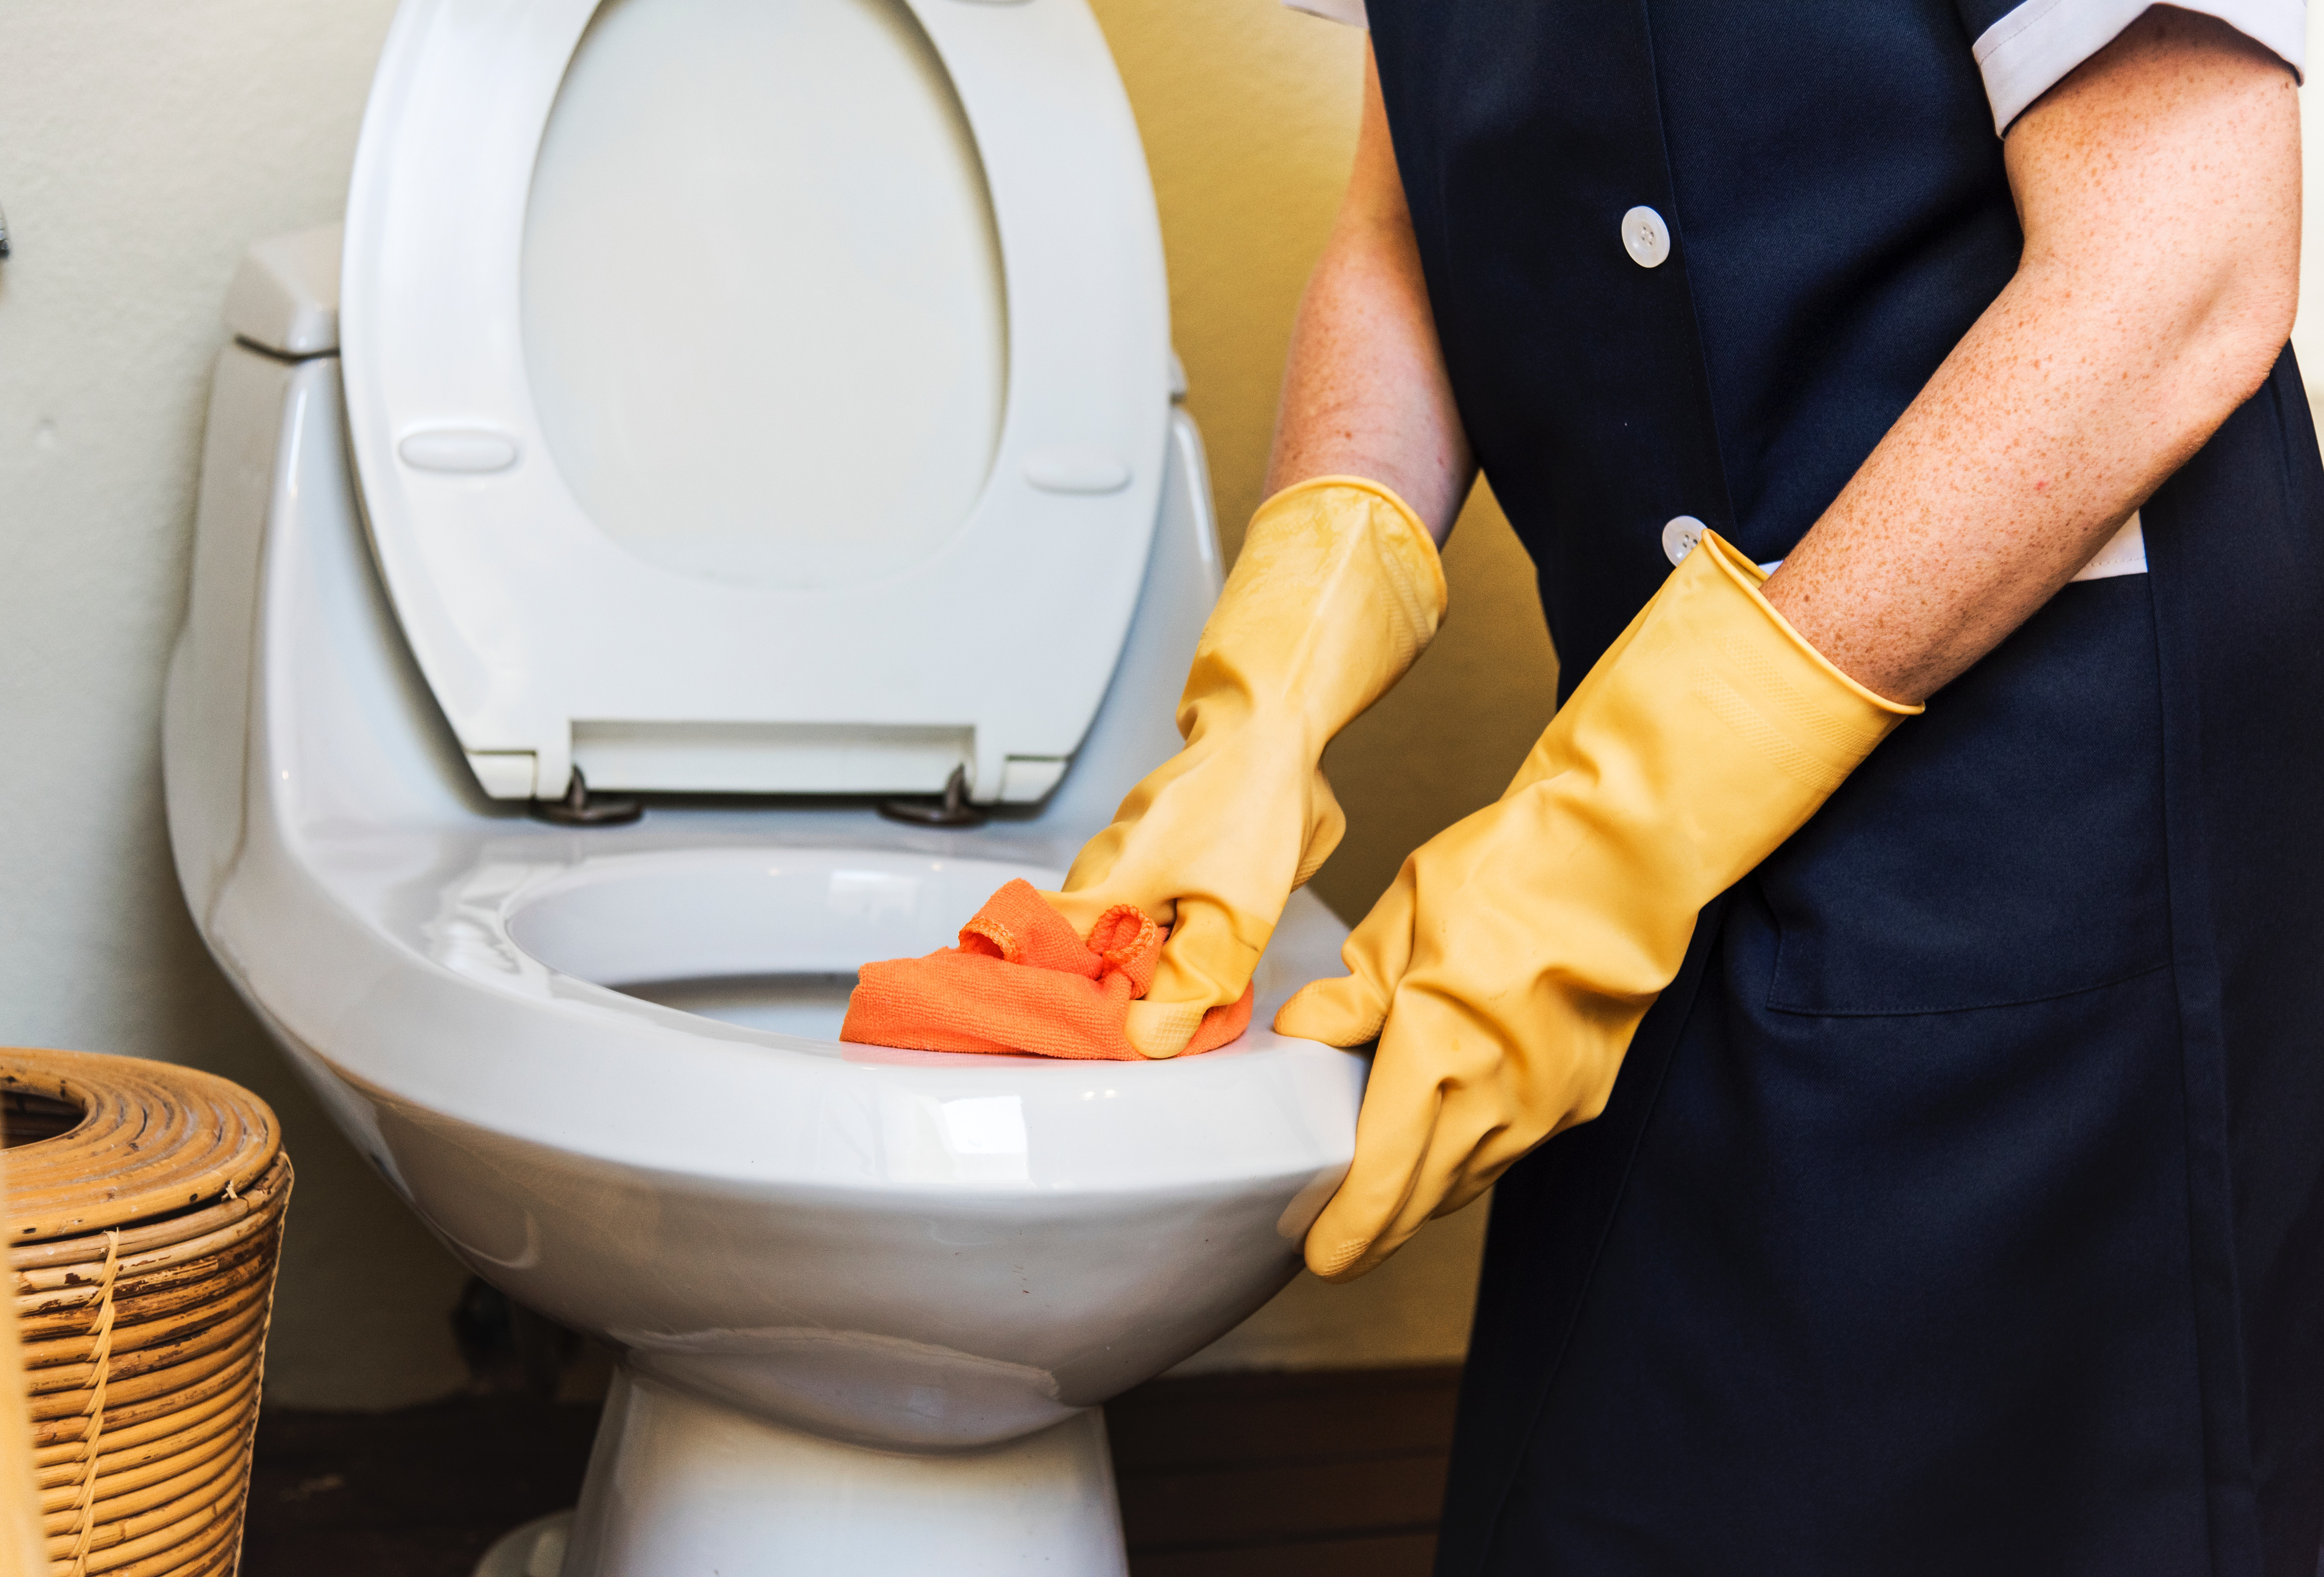 Tips for Cleaning the Toilet Bowl